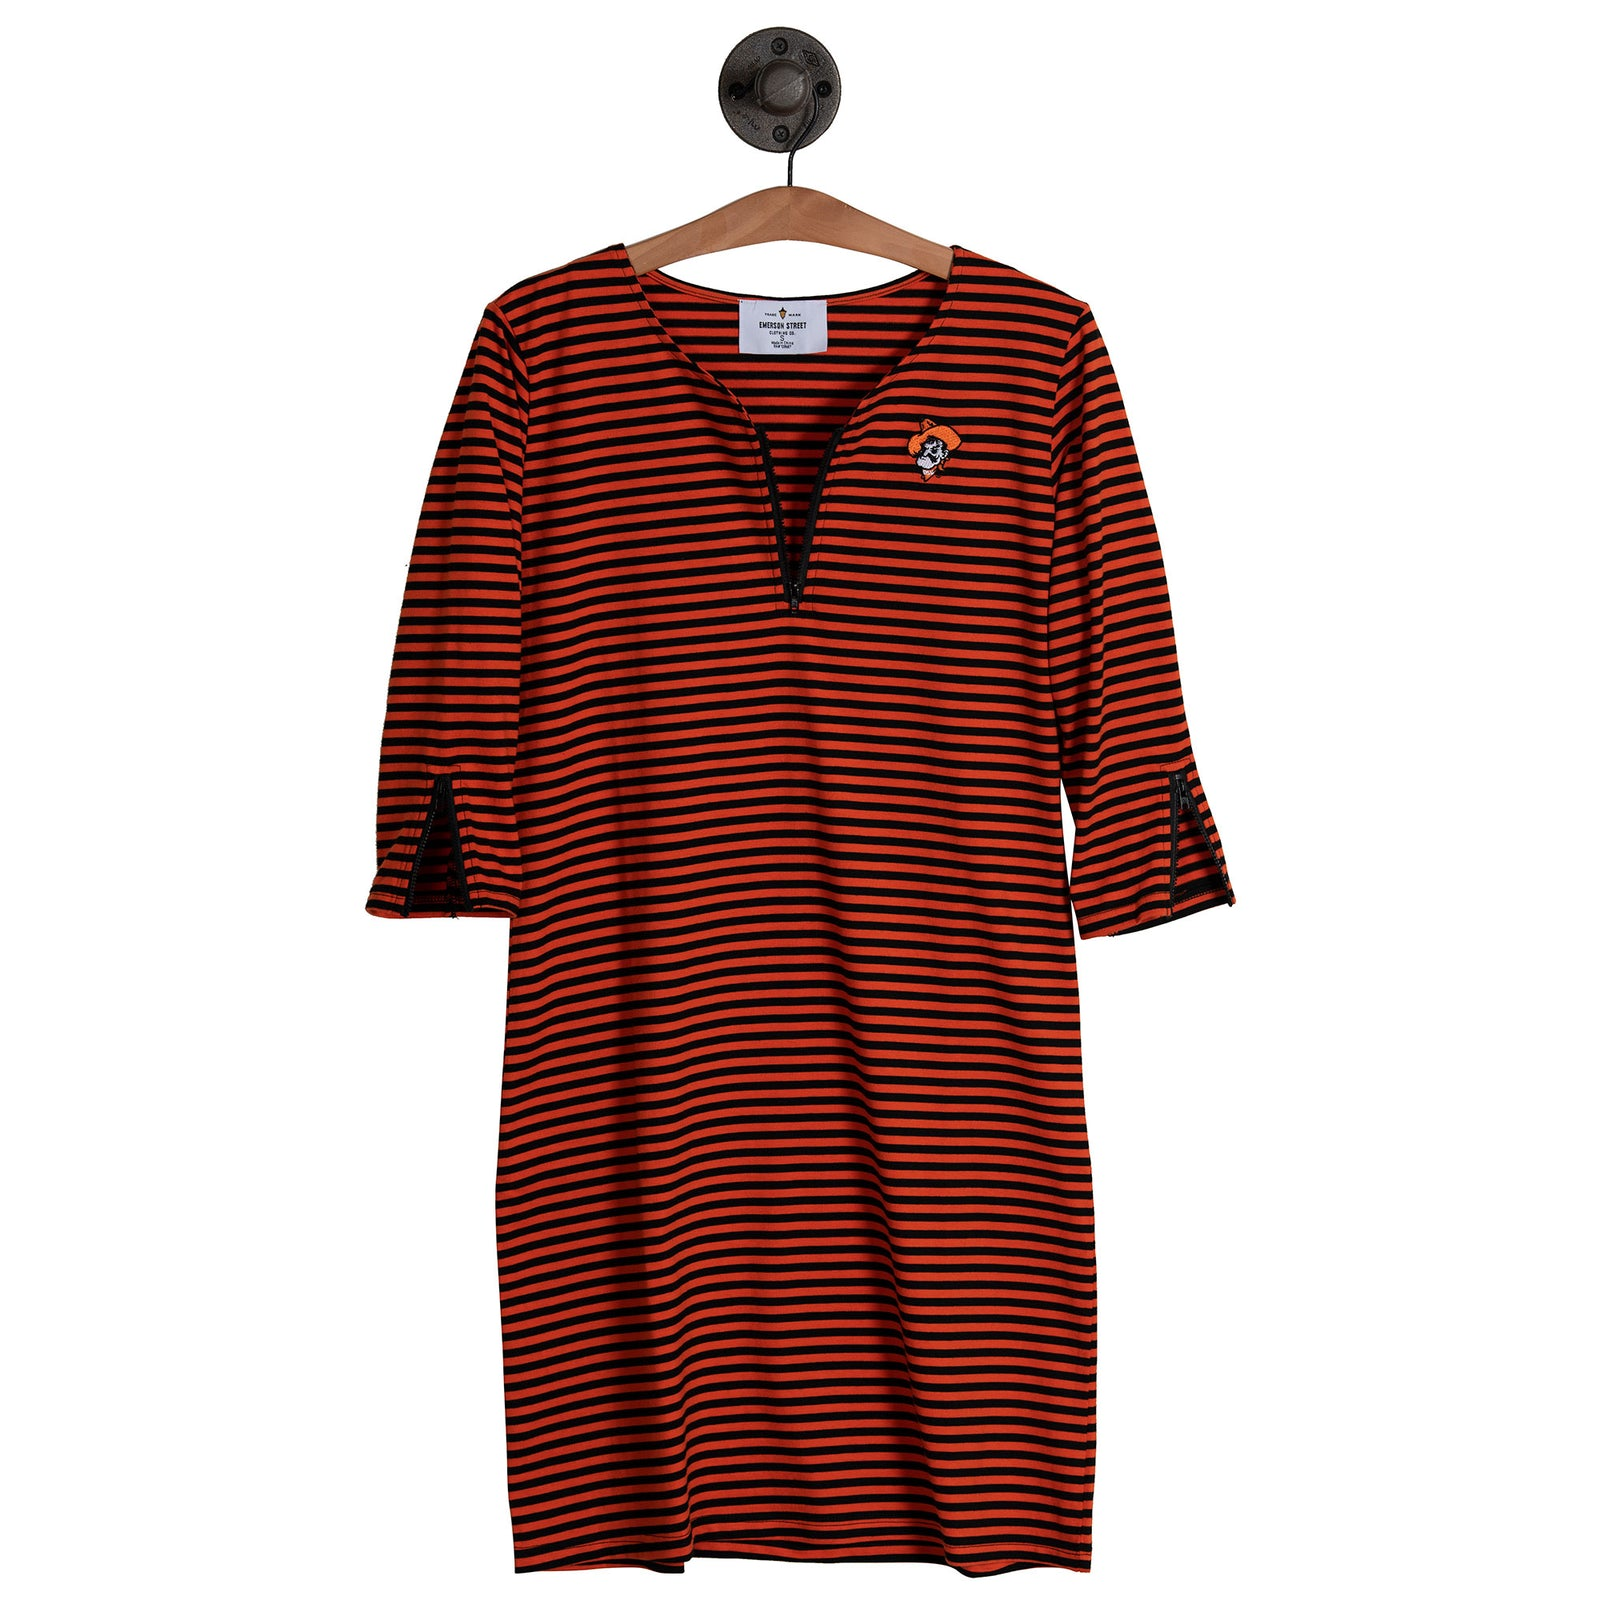 OSU PAIGE STRIPED DRESS - OSUPSD